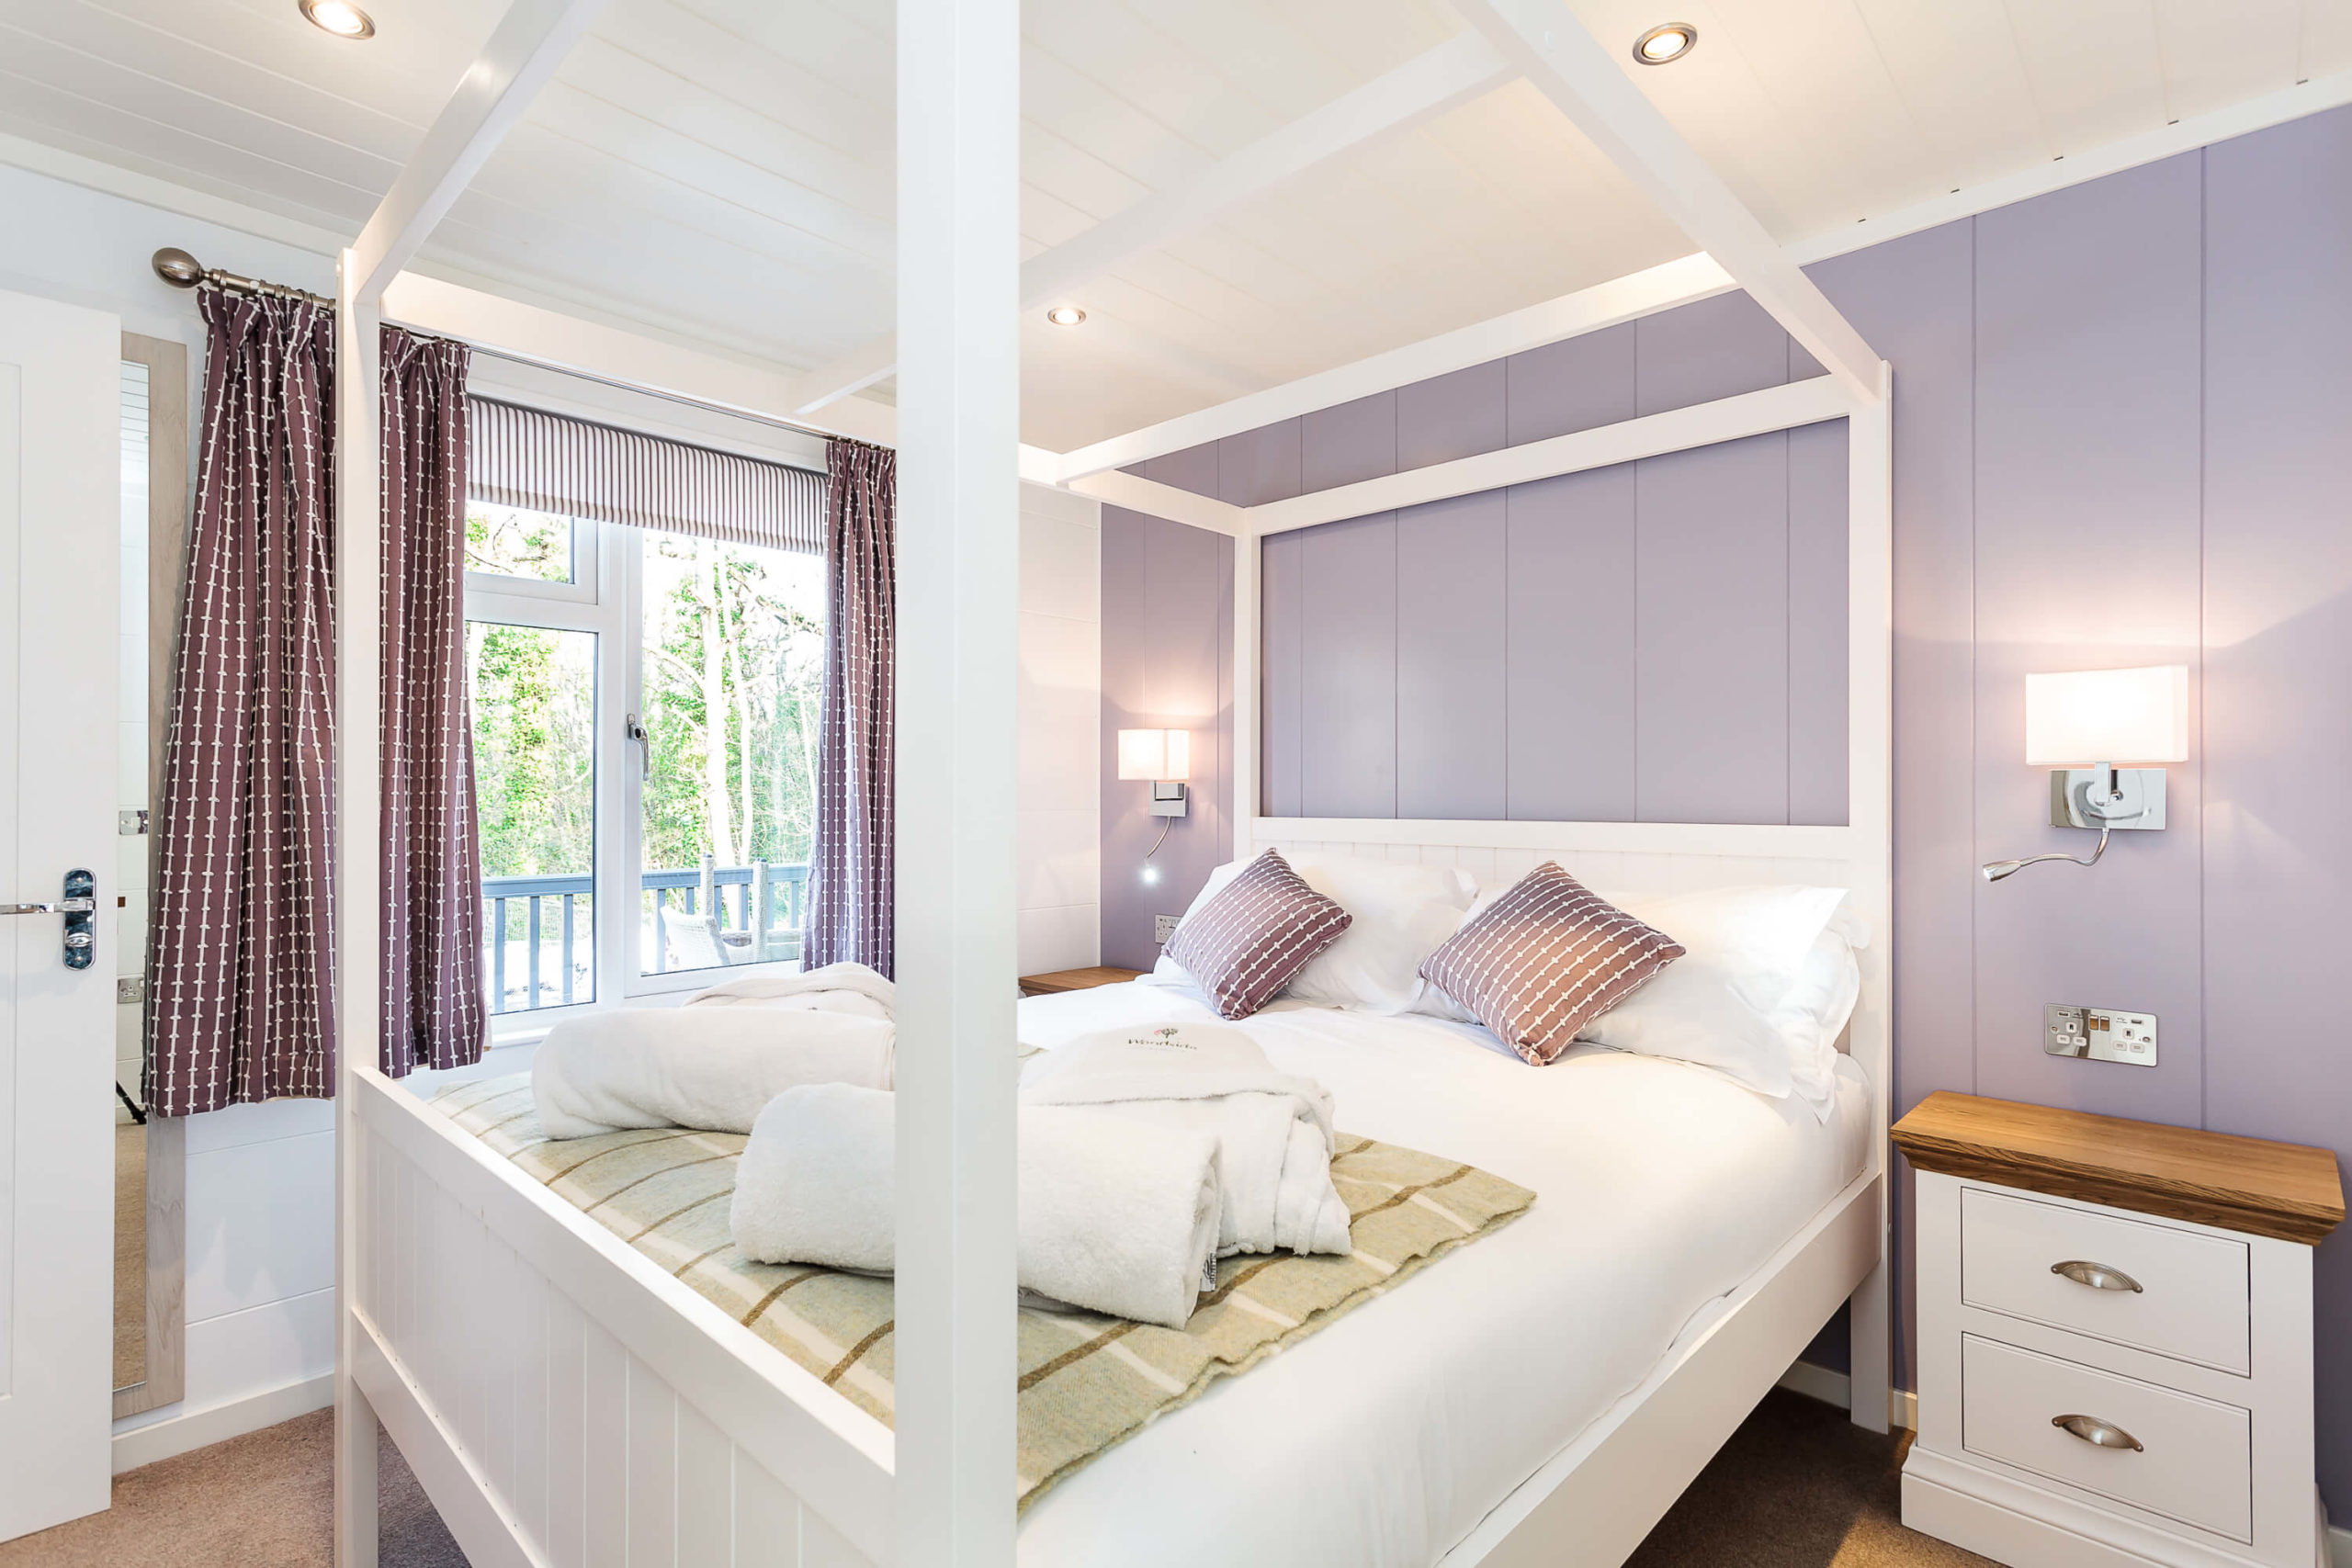 Interior shot of a bedroom in a lodge a Woodside Bay